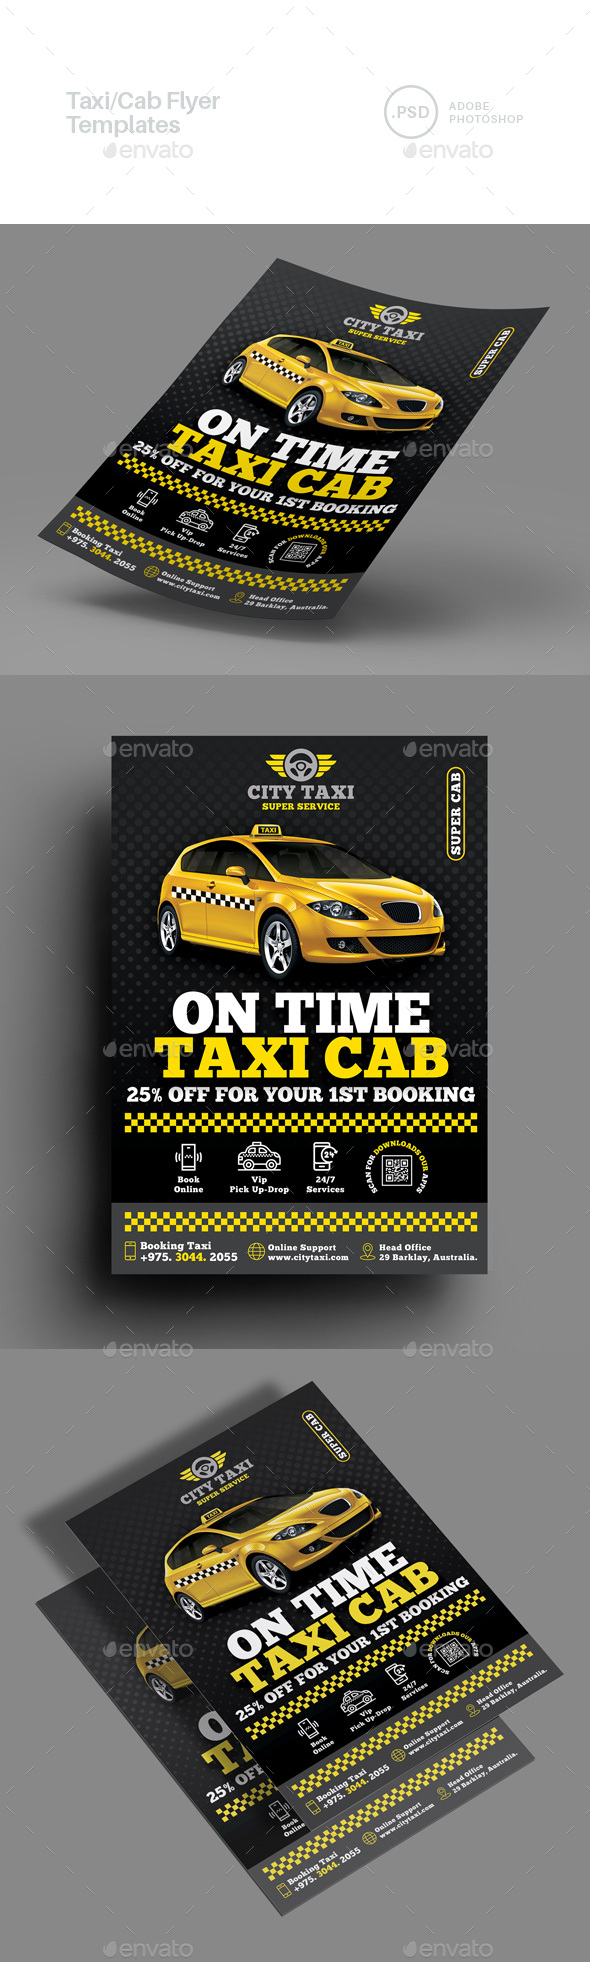 Taxi/Cab Flyer Templates